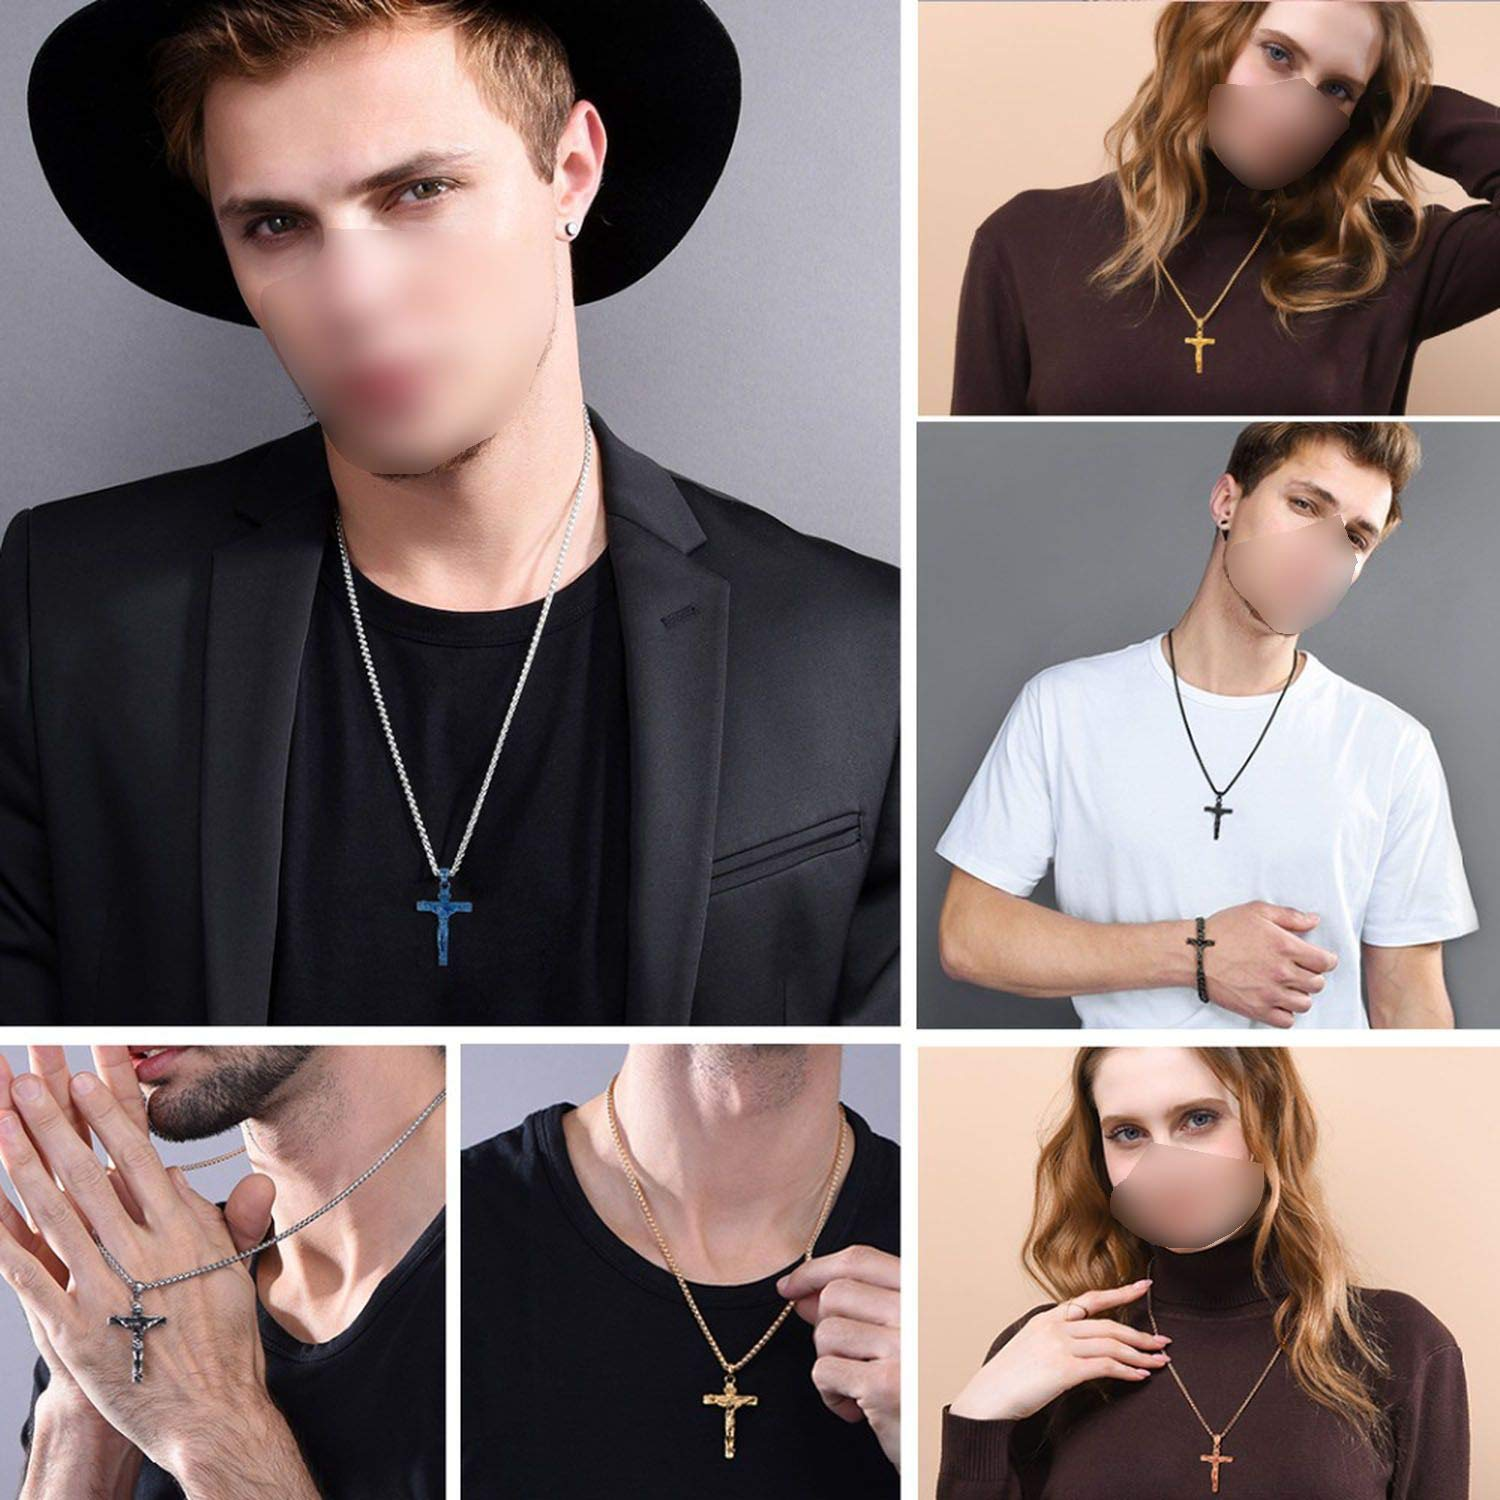 Stainless Steel Pendant /& Necklace for Men Catholic Religious Cross Gold Hip-Hop Jewelry Gifts,Stainless Steel